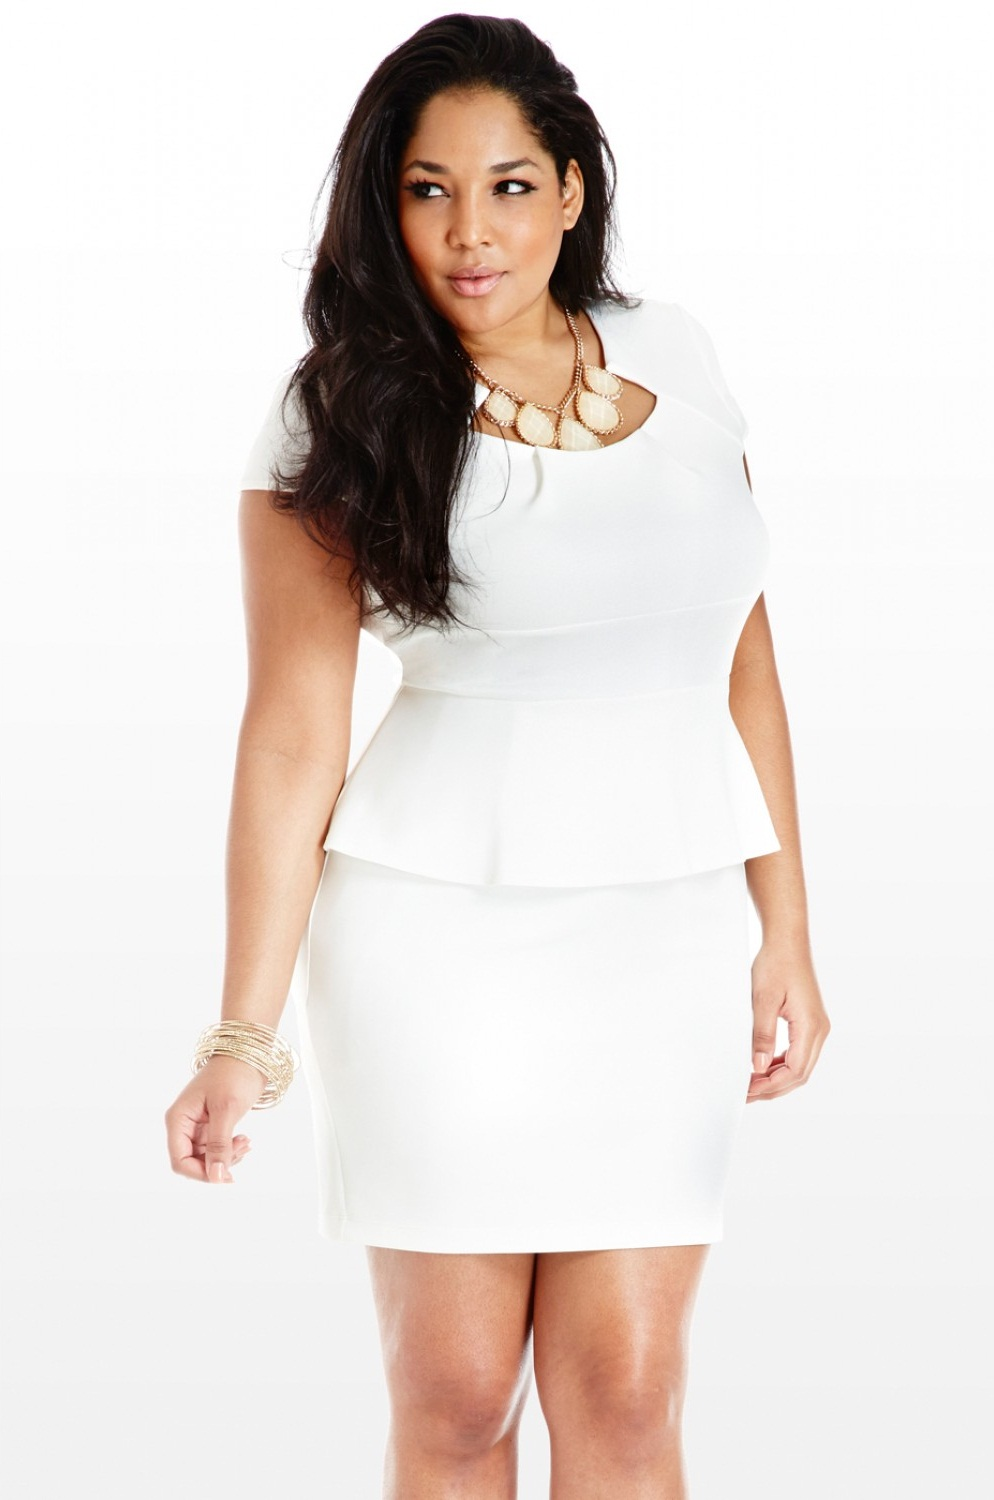 Dresses for Diva Queens. Proudly feminine and perfectly fabulous, these plus size dresses come in all different styles and trends. For casual looks, opt for a sleeveless and sexy dress that's easy, breezy, and effortlessly beautiful.